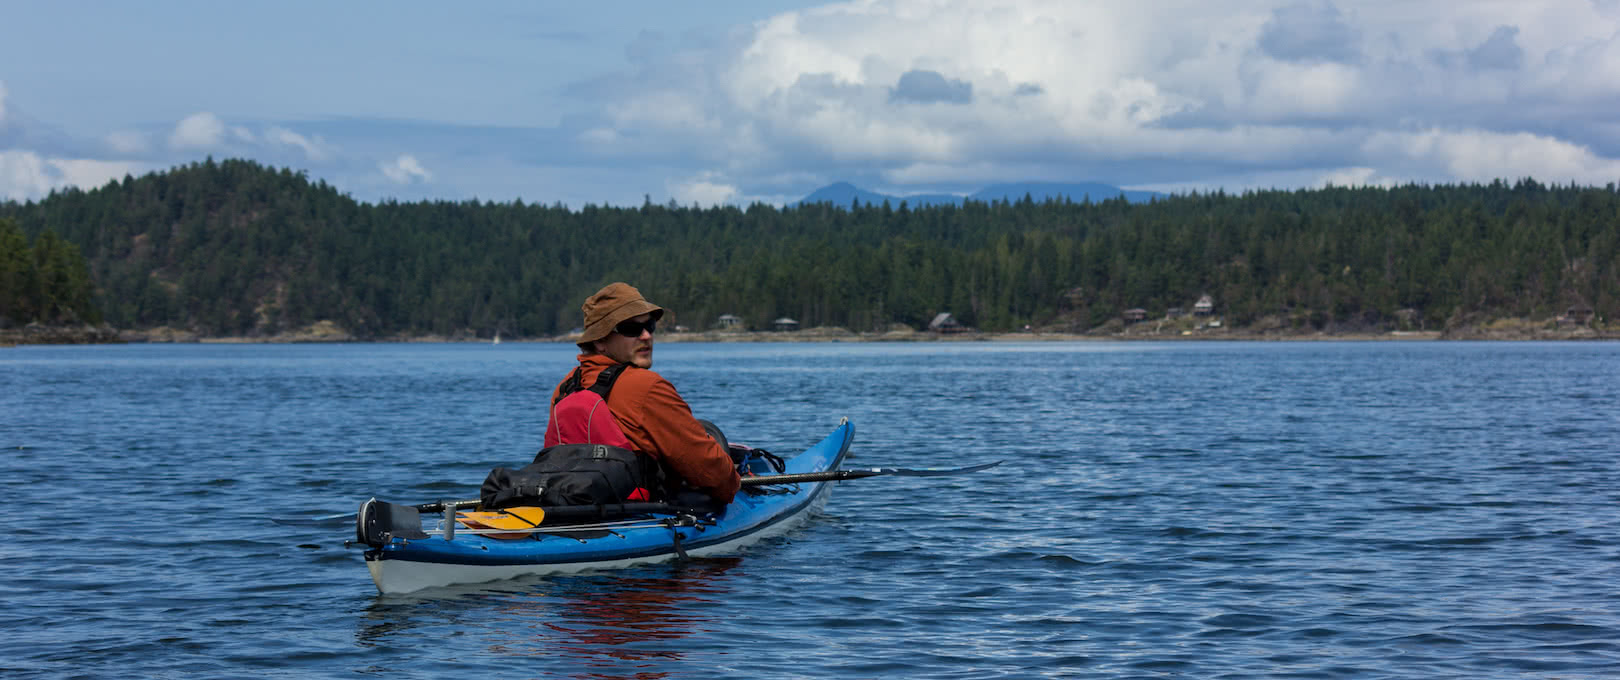 An experienced kayaker waiting for guests in Desolation Sound